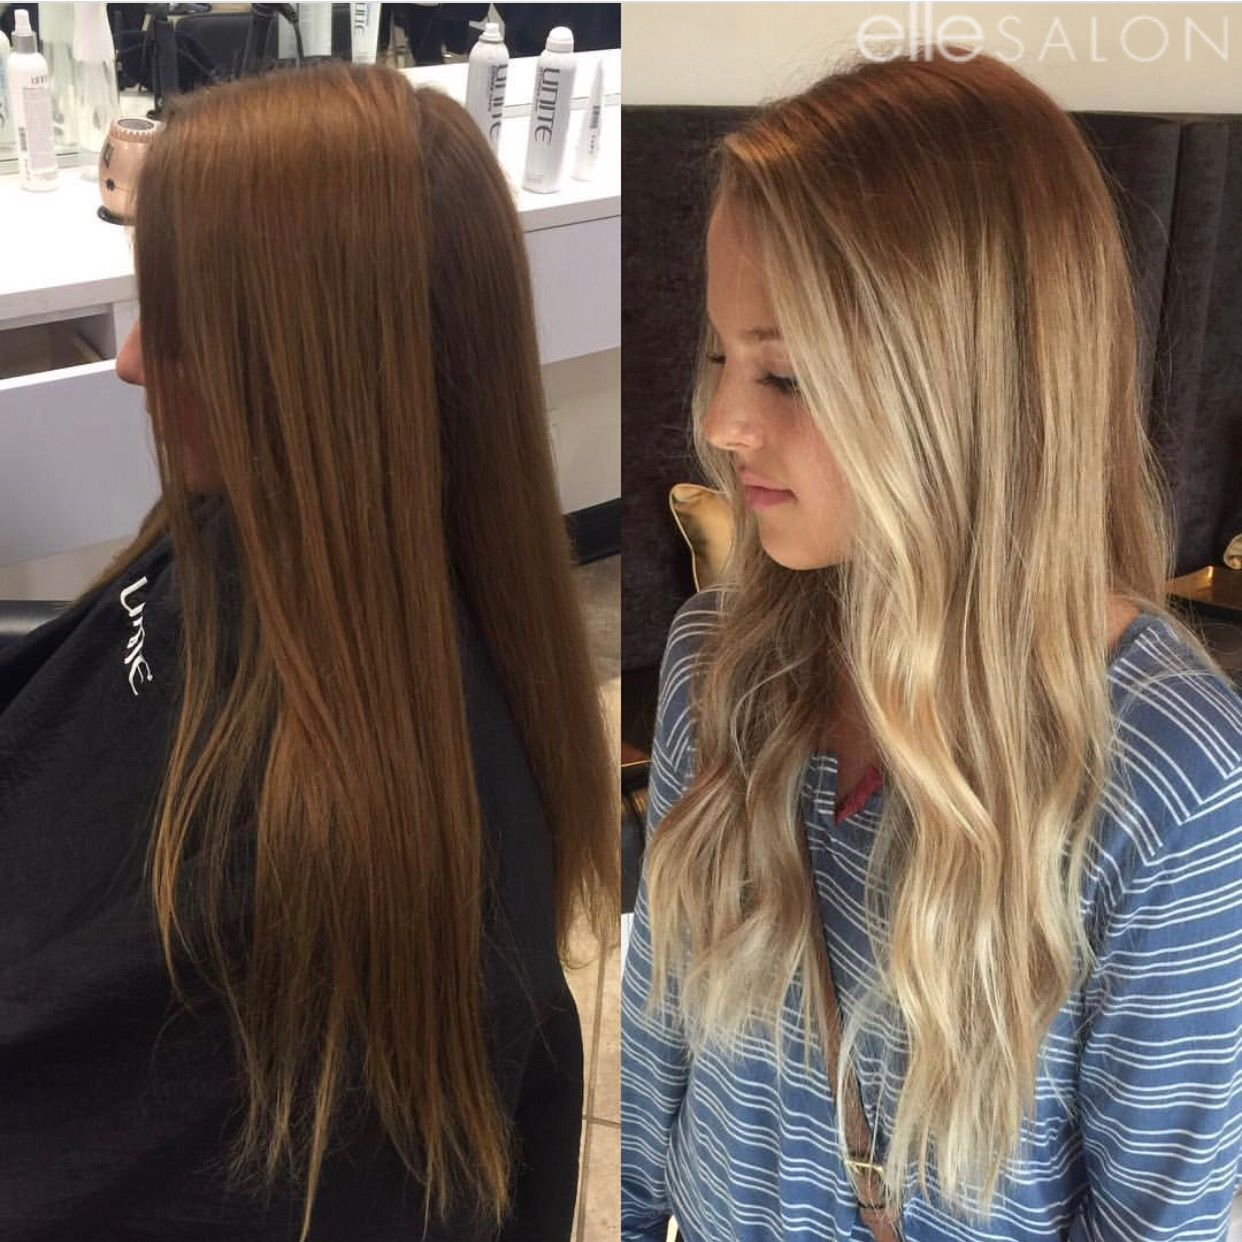 Brunette To Blonde Hair By Jordynf Ellesalon Brunette To Blonde